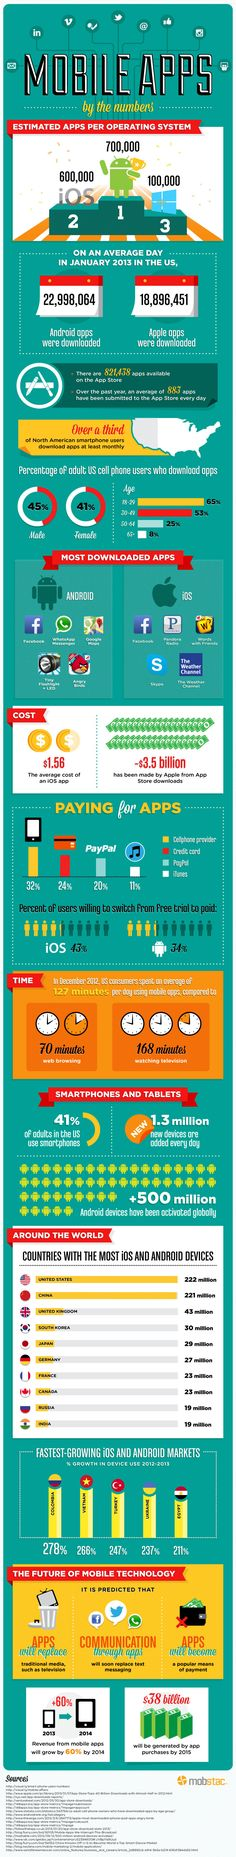 A total of 102 billion mobile apps will be downloaded in the year 2013, according to a new Gartner report. More and more users are turning to apps for education, entertainment as well as to improve their productivity. Check out this amazing infographic put together by MobStac on how people around the world are using their smartphones and embracing the app revolution.